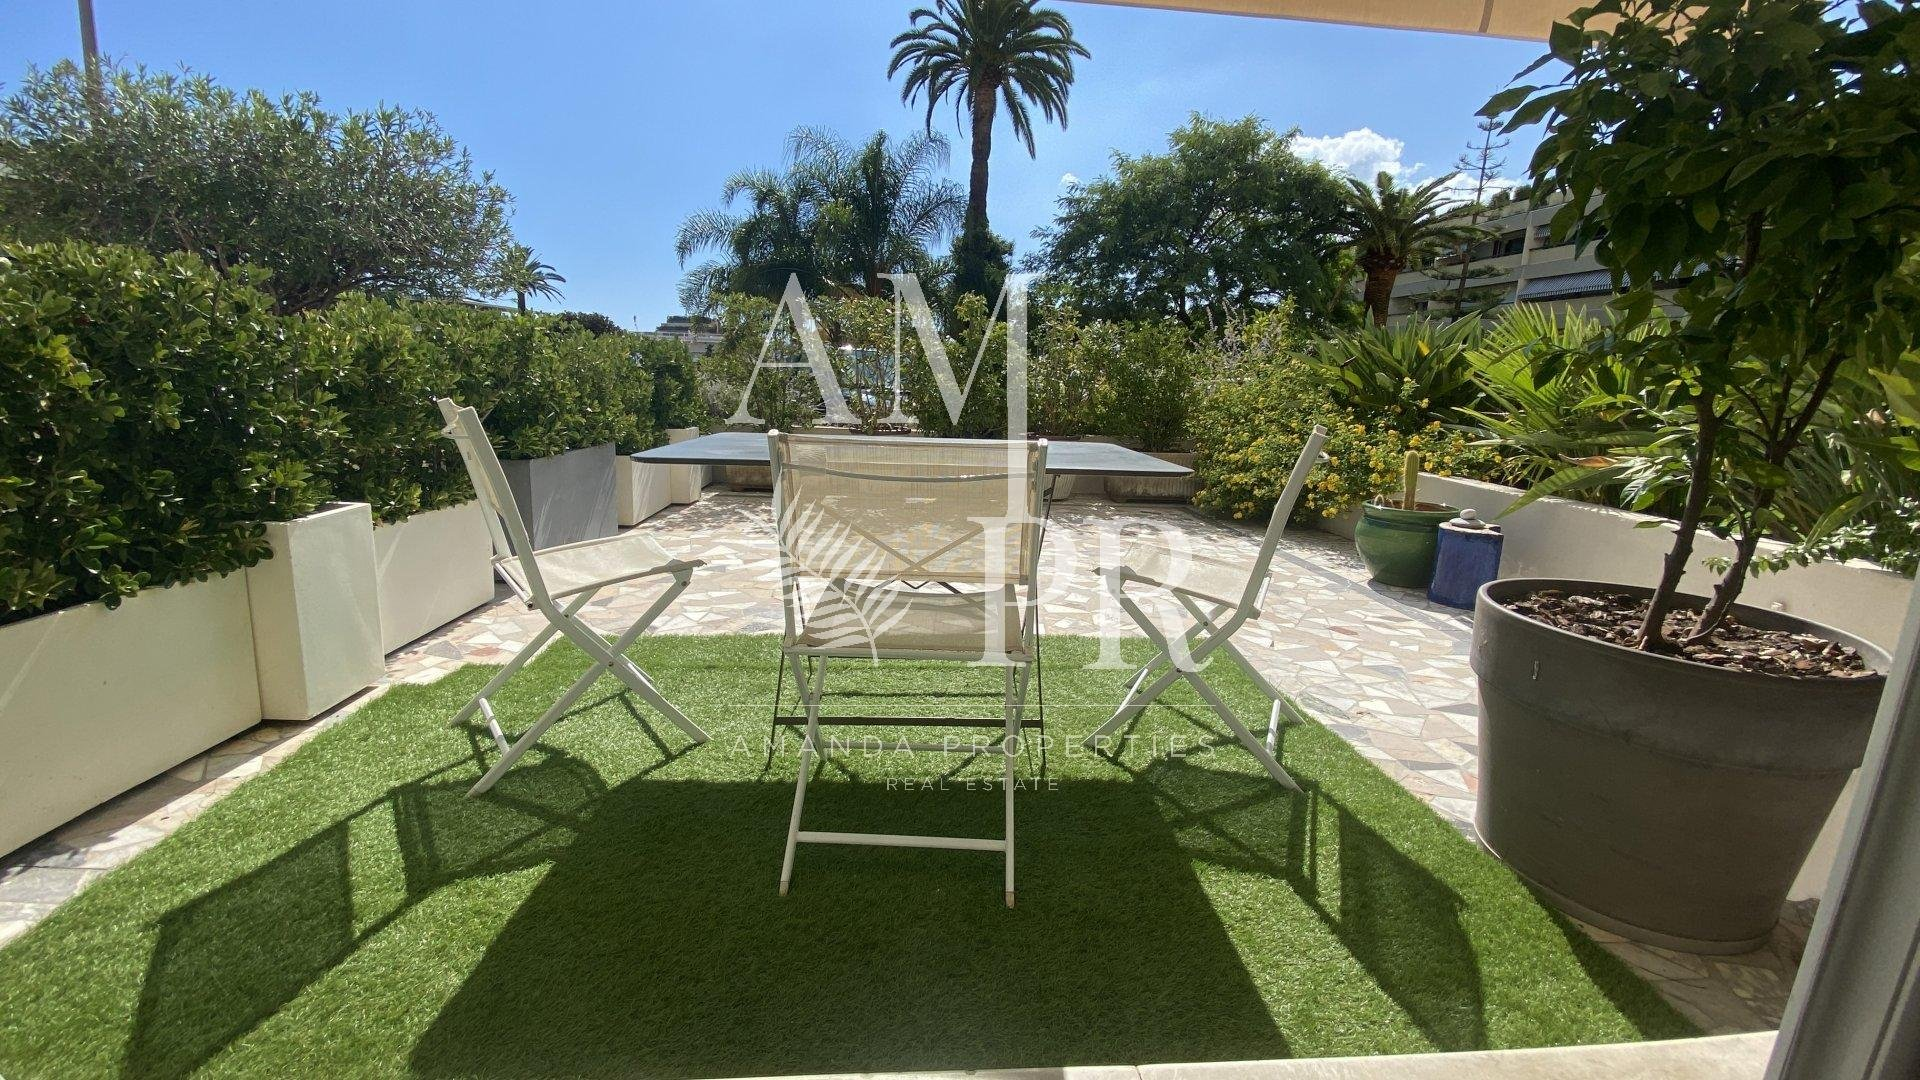 Cannes Basse Californie - Charming 3 rooms of 85sqm - Garden level